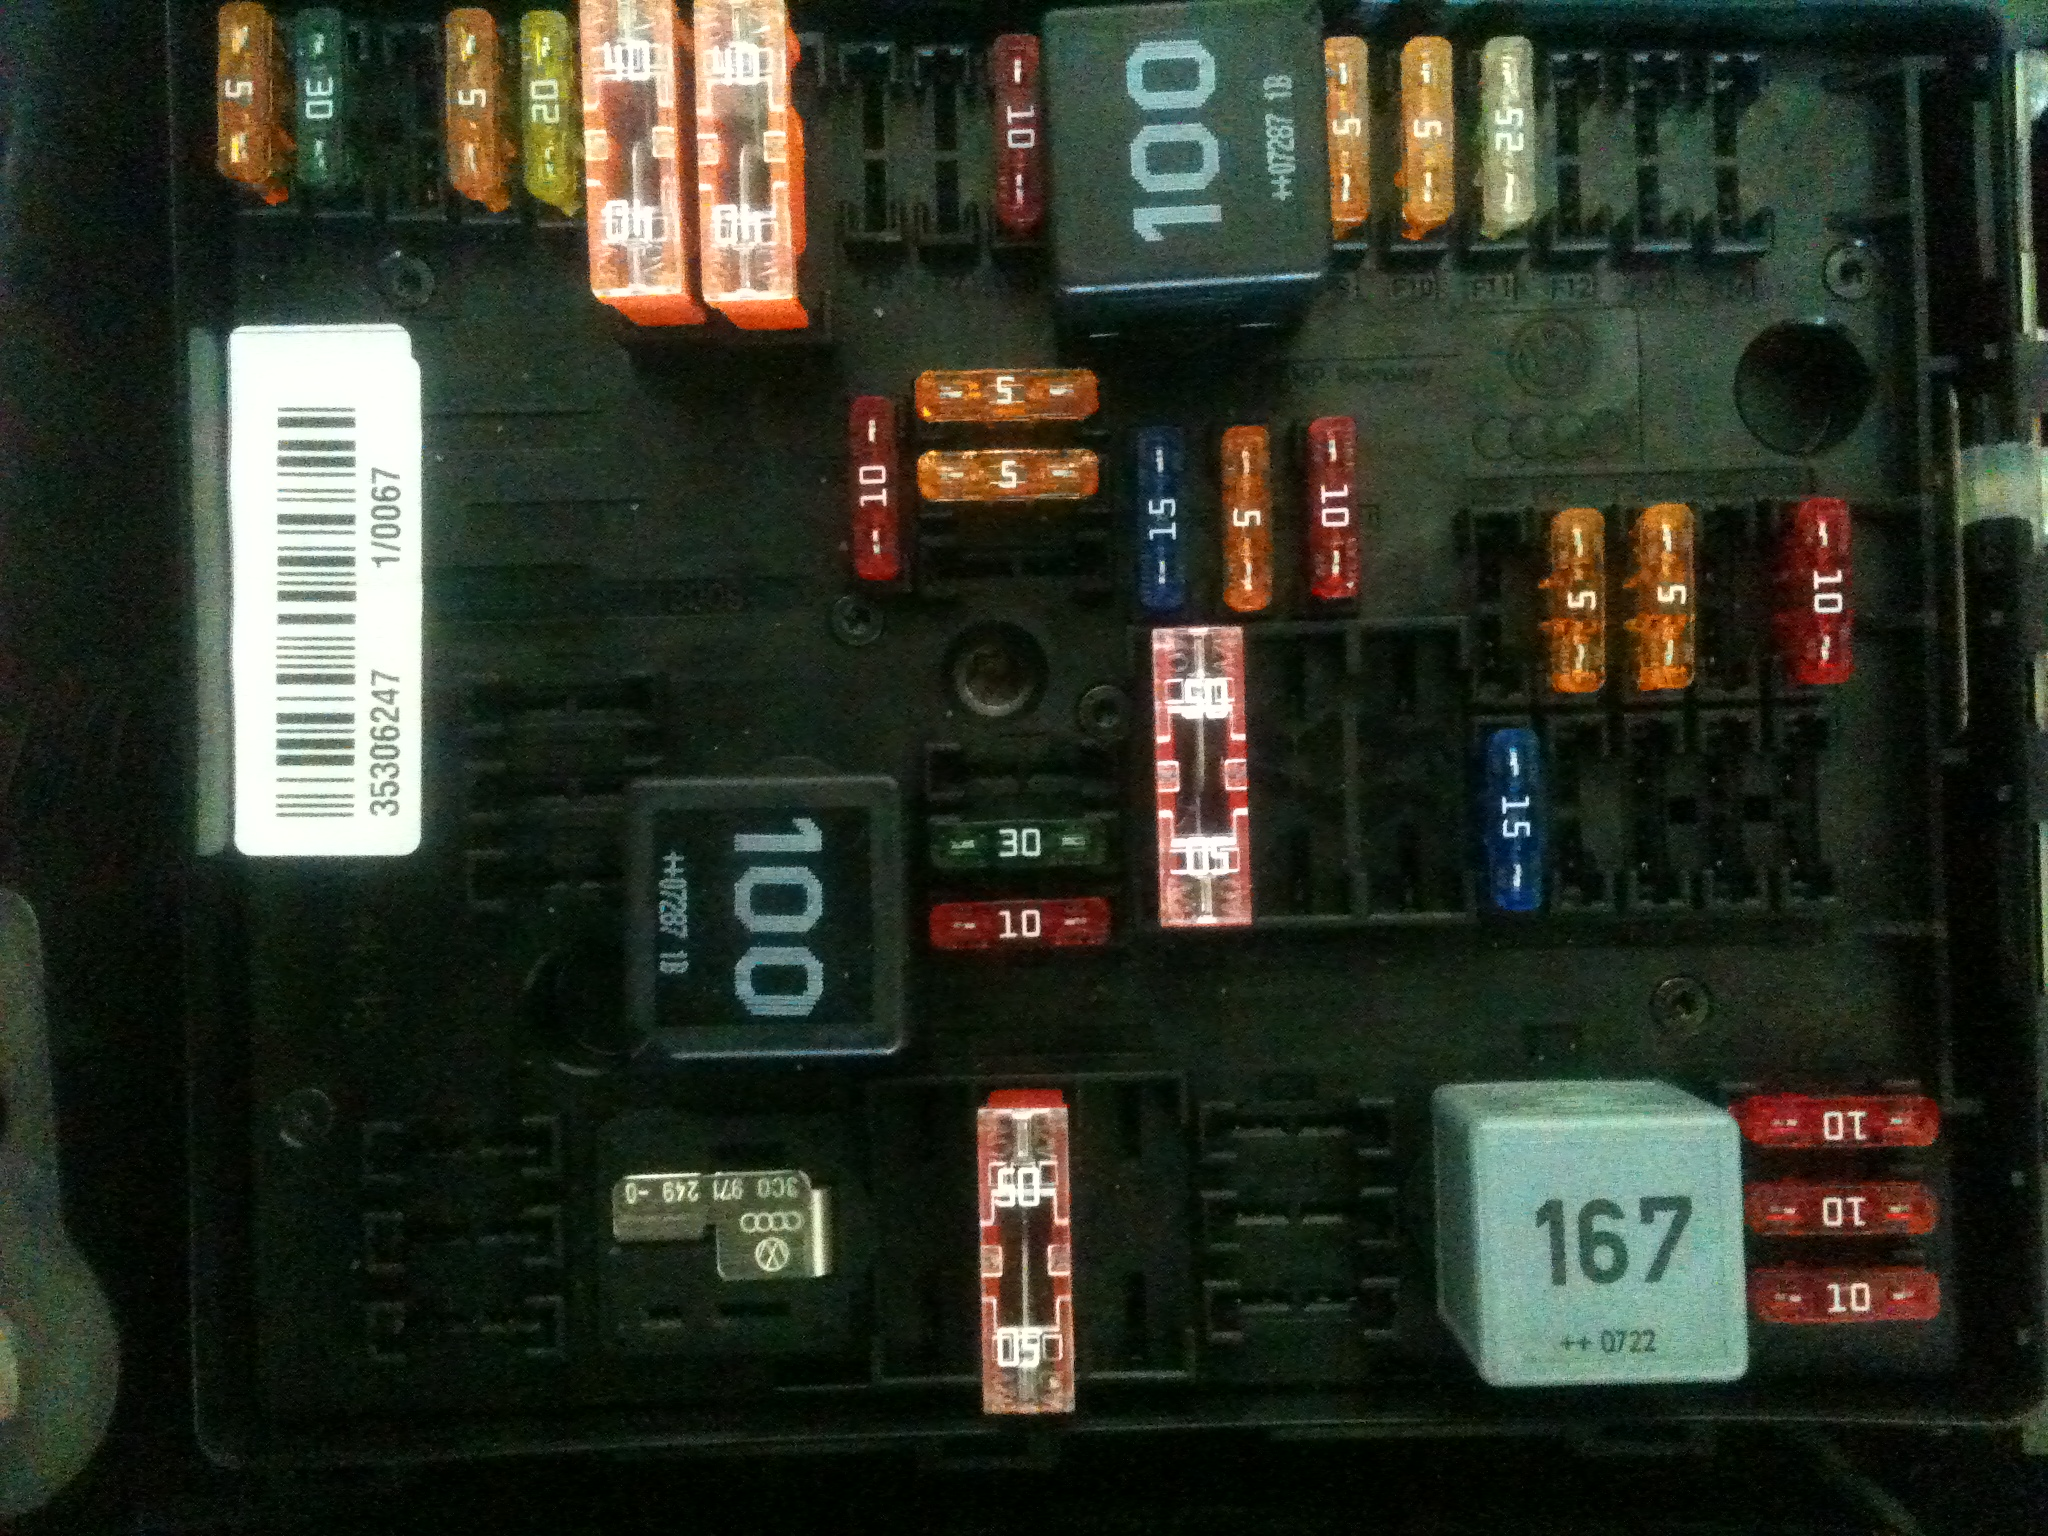 Civic Fuse Box Wiring Diagram In Addition Honda Civic Fuse Box Diagram